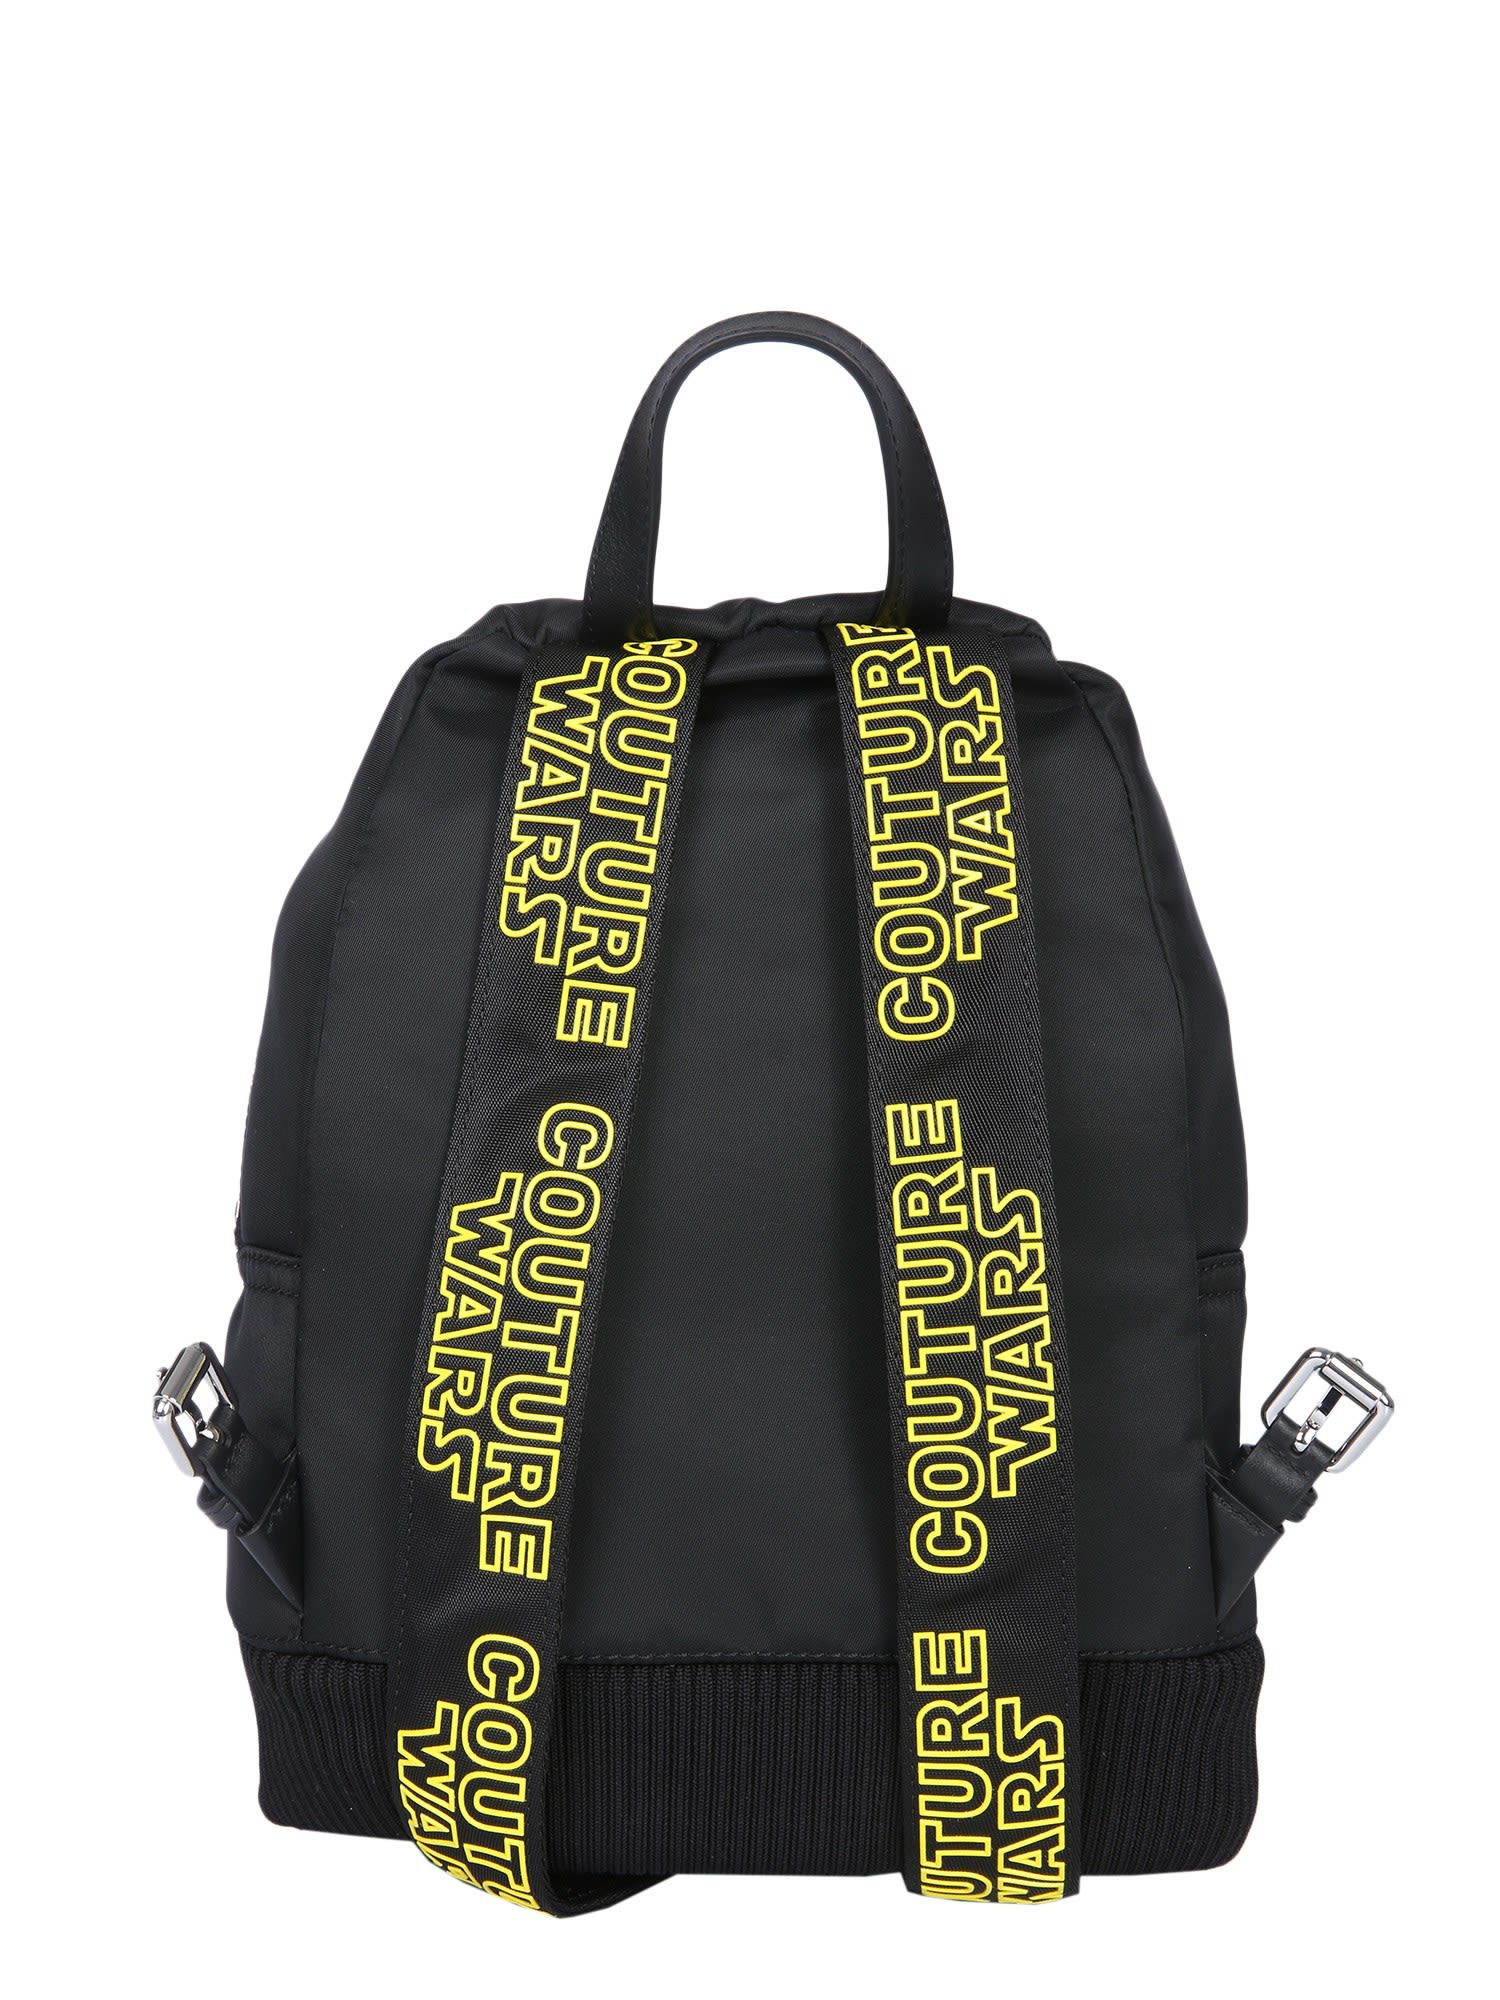 c02c3c491ee7 Moschino Moschino Couture Wars Backpack Bomber - NERO - 10758320 ...